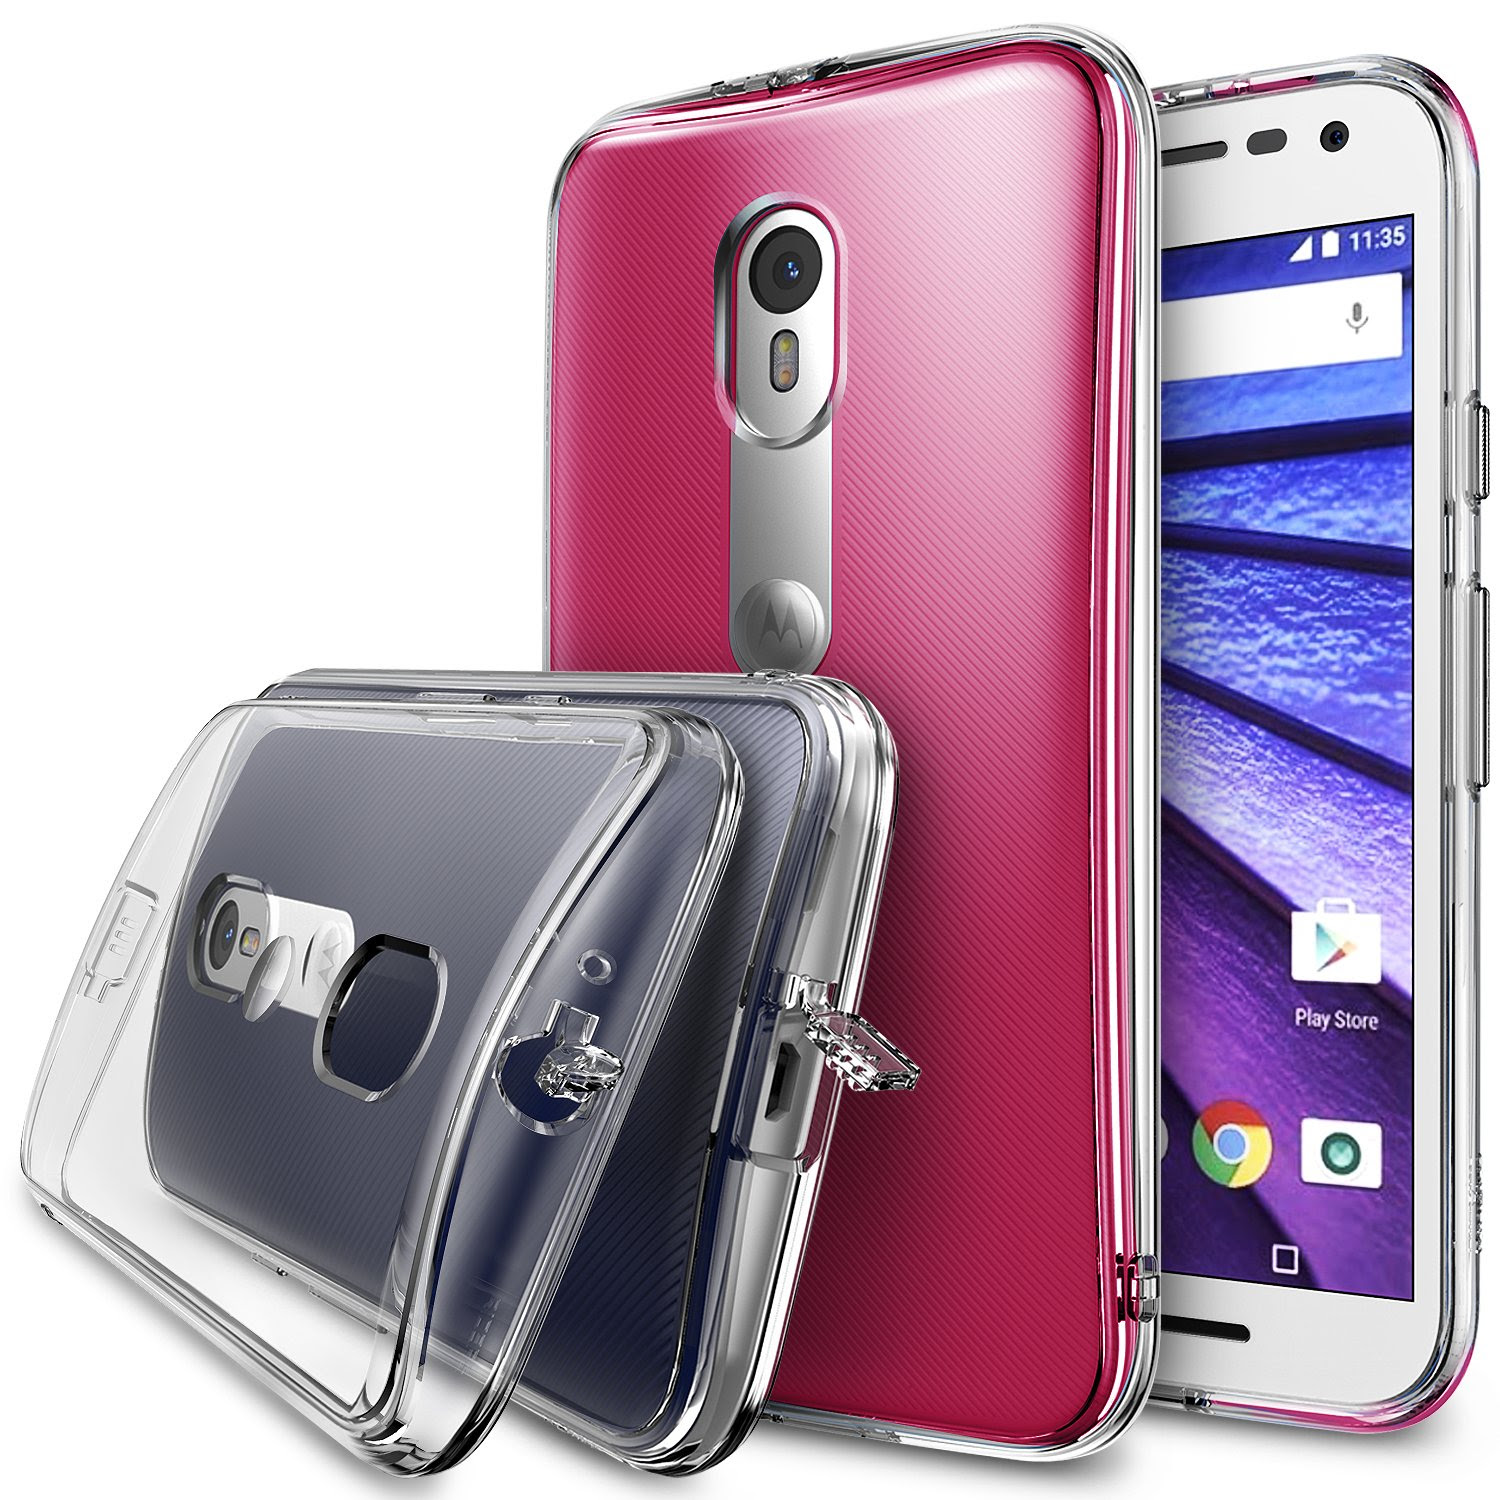 Ringke FUSION Crystal View Moto G 3rd Gen 2015 Case